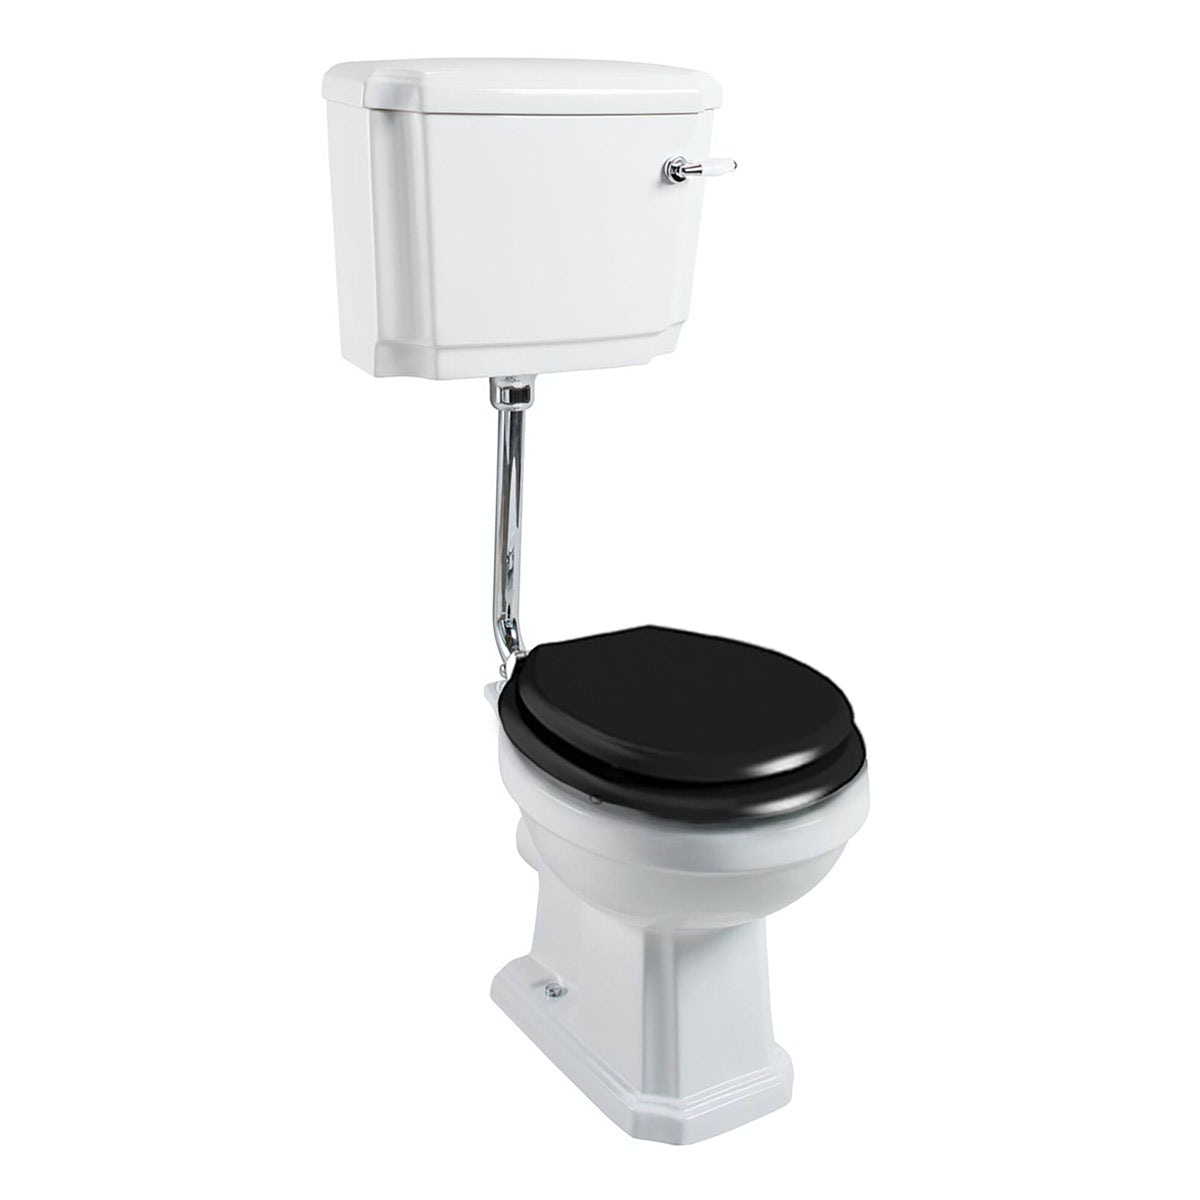 The Bath Co. Cromford low level toilet inc black soft close seat